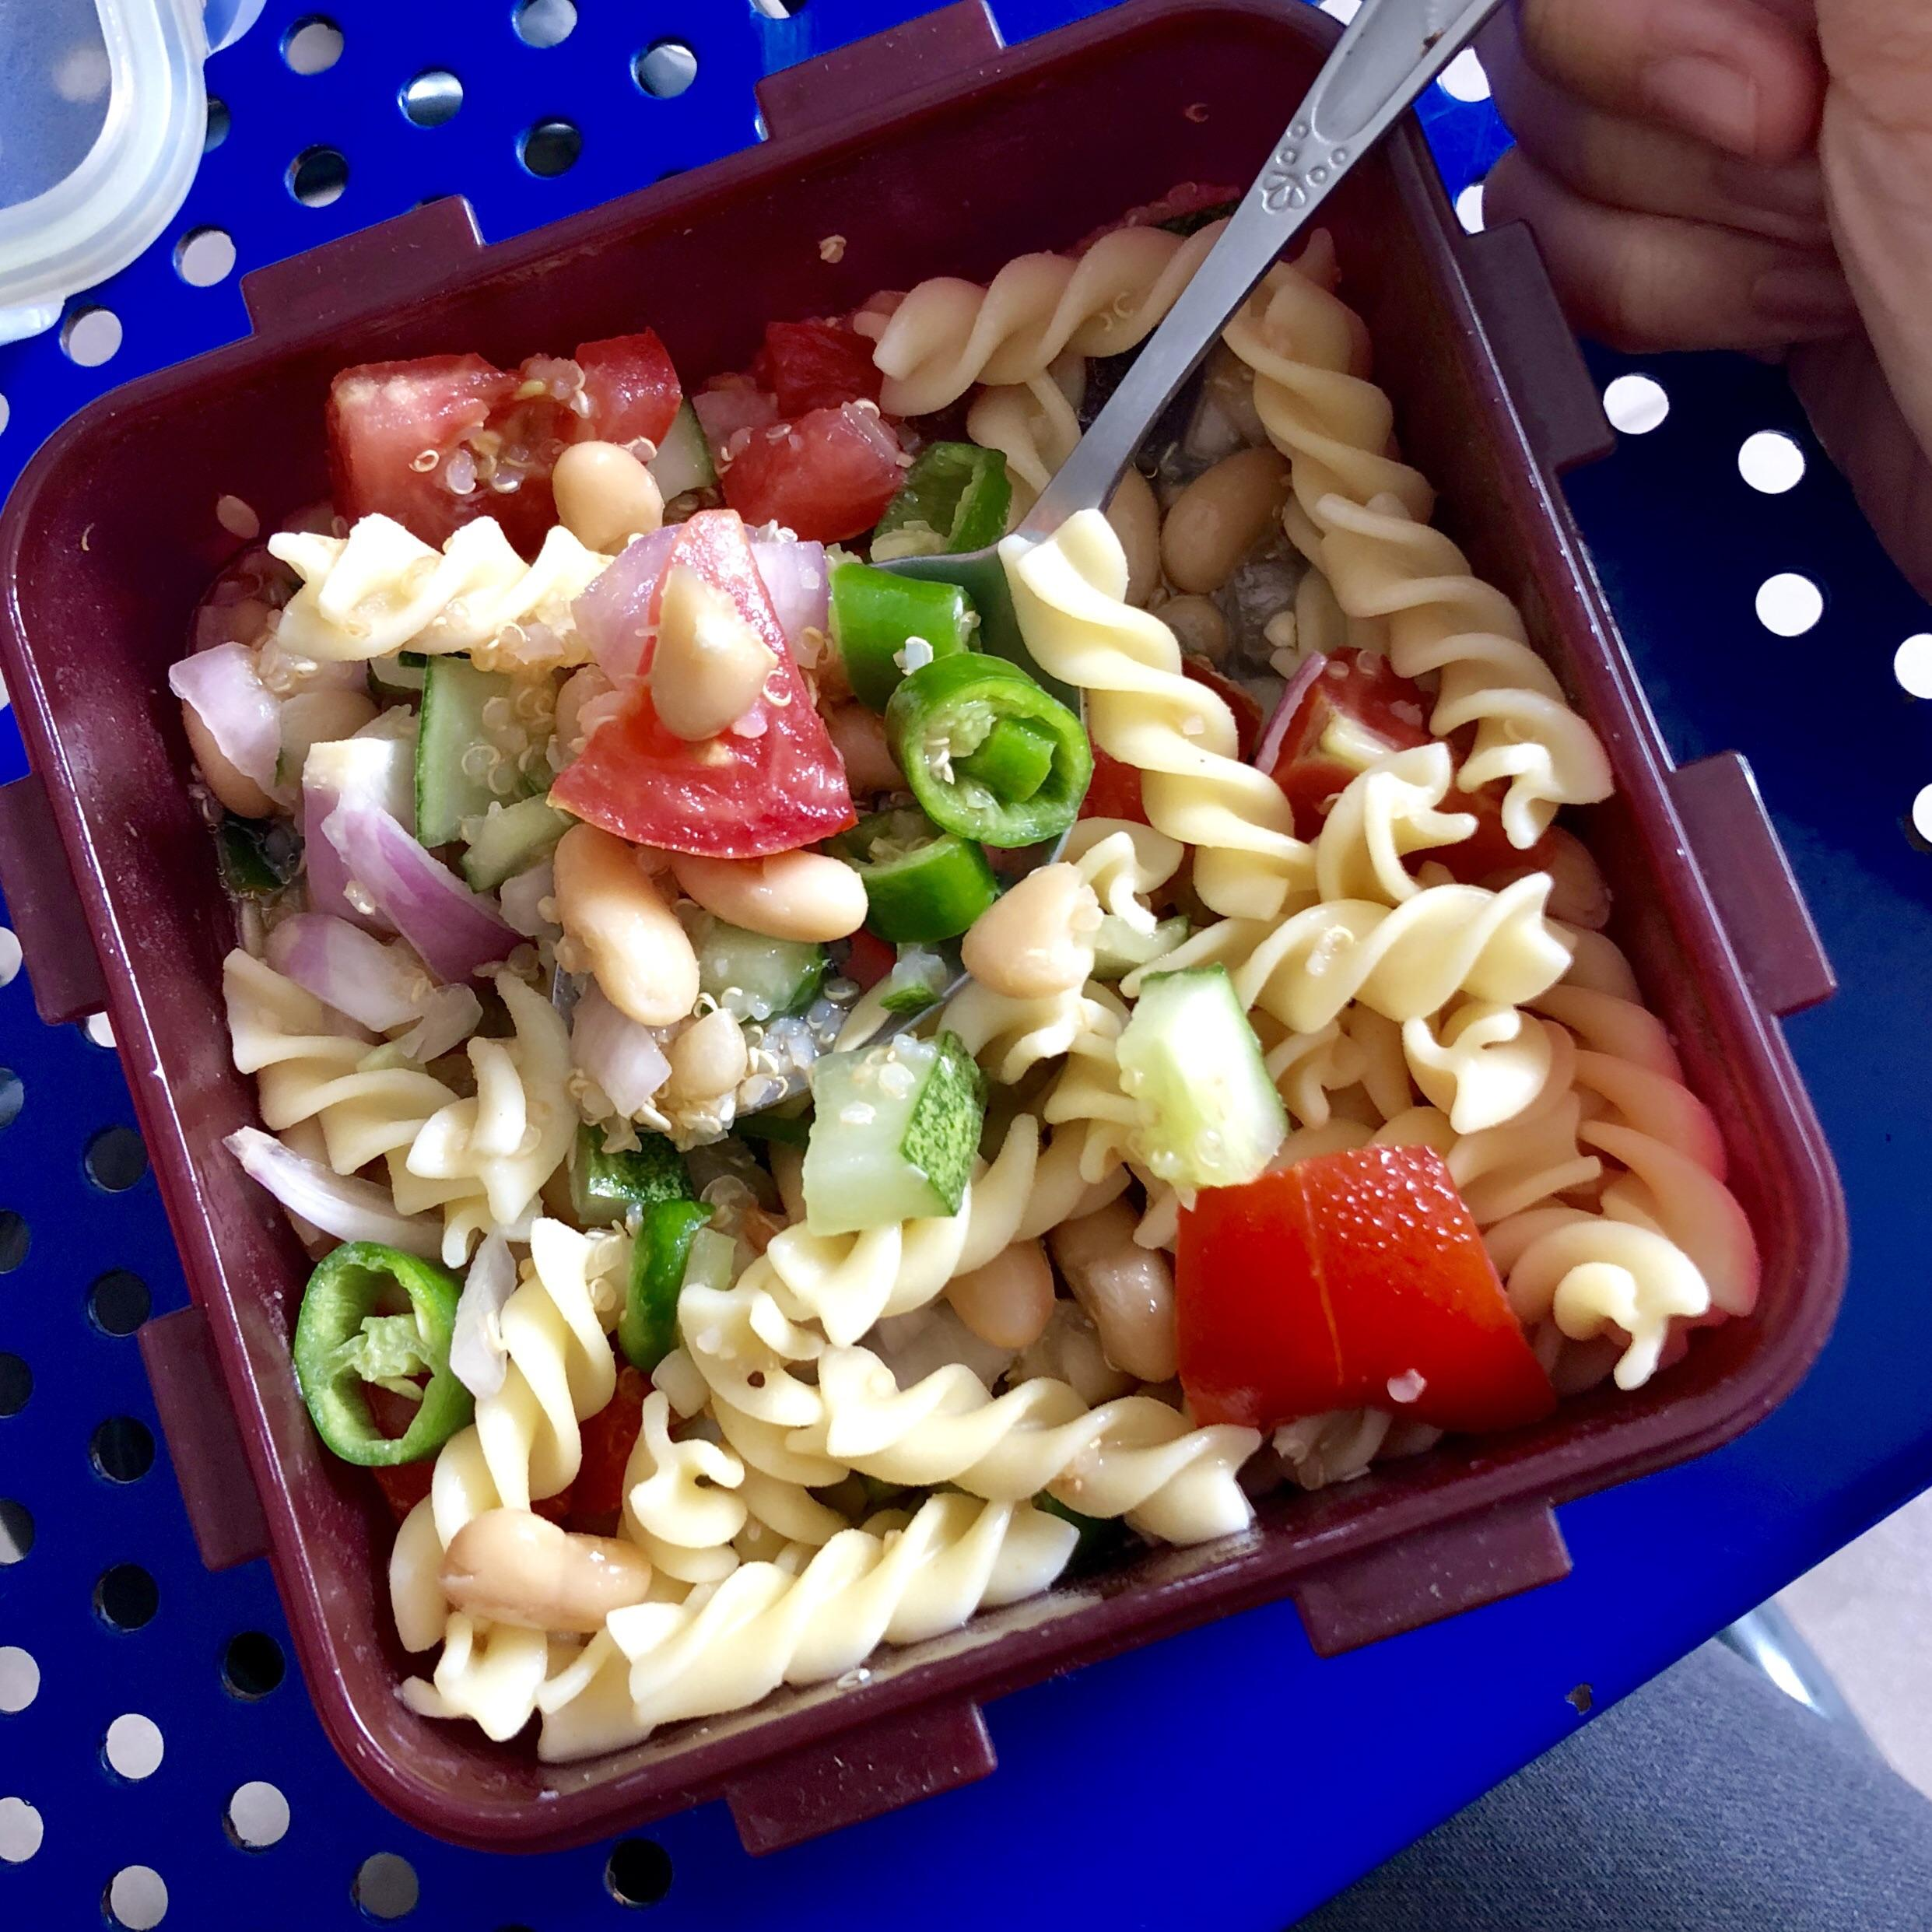 Lunch In A Box My Breakfast Lunch In A Box 430 Calories Of Just Evoo Quinoa